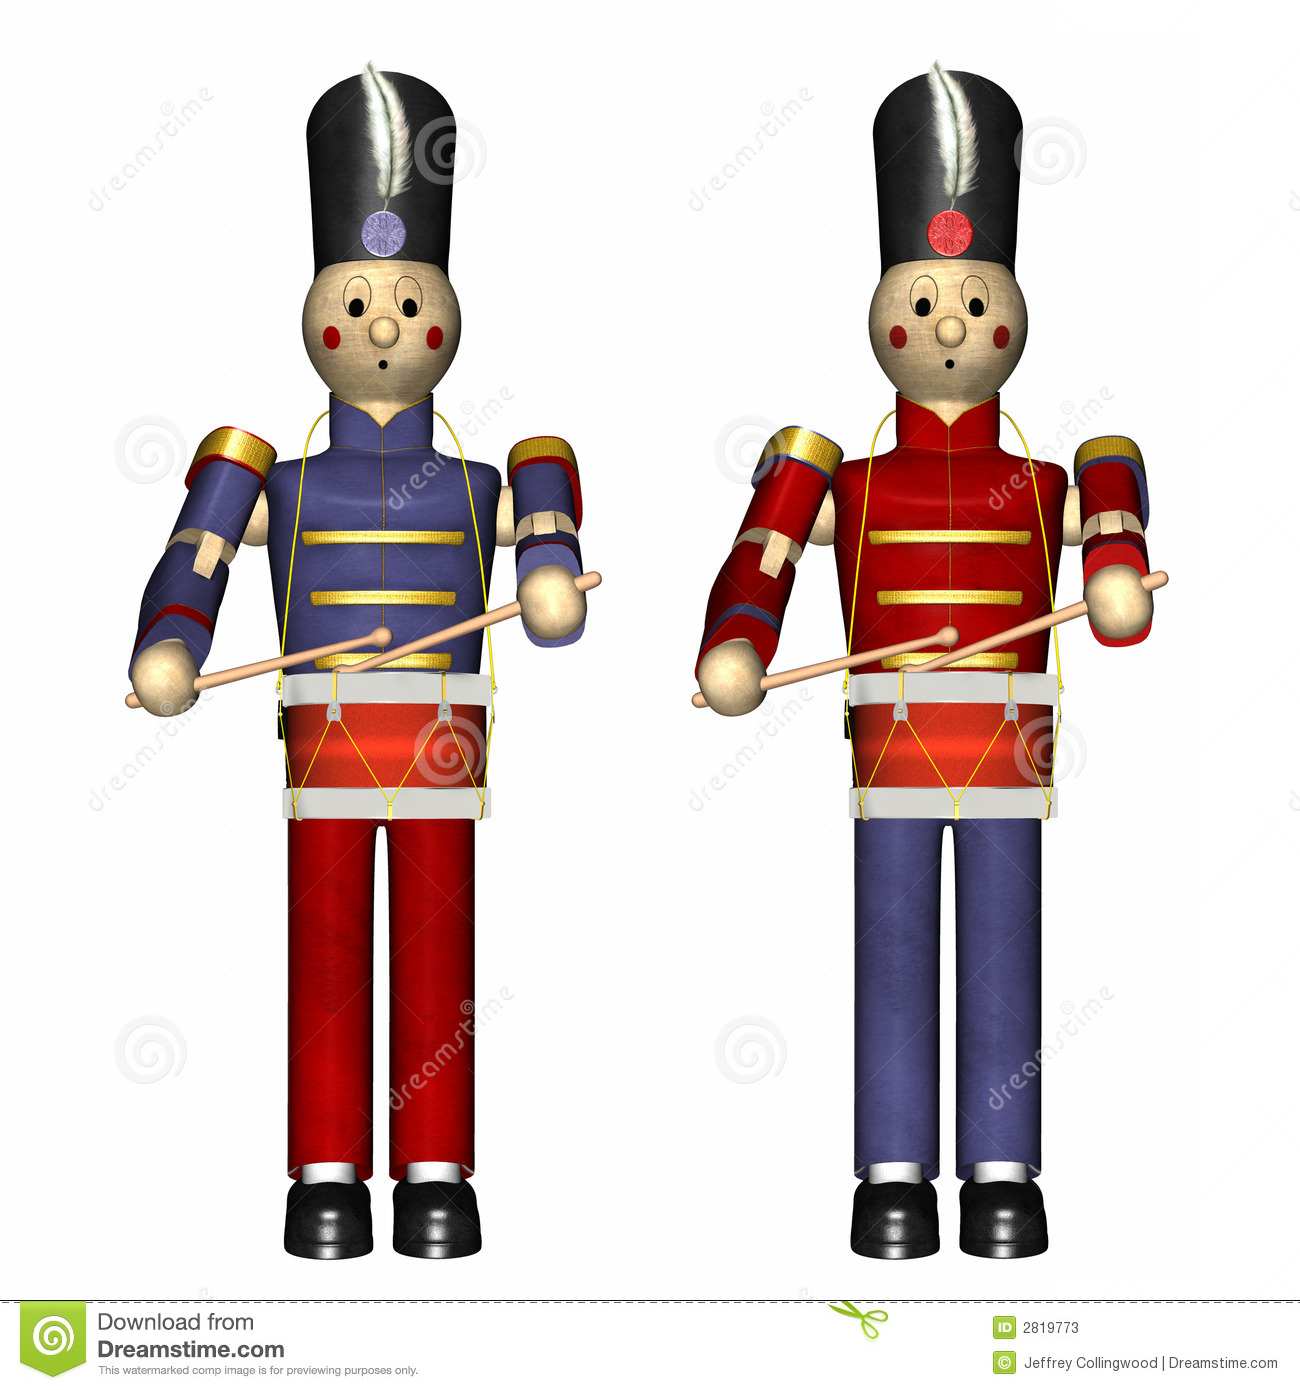 Christmas Toy Soldiers stock illustration. Illustration of